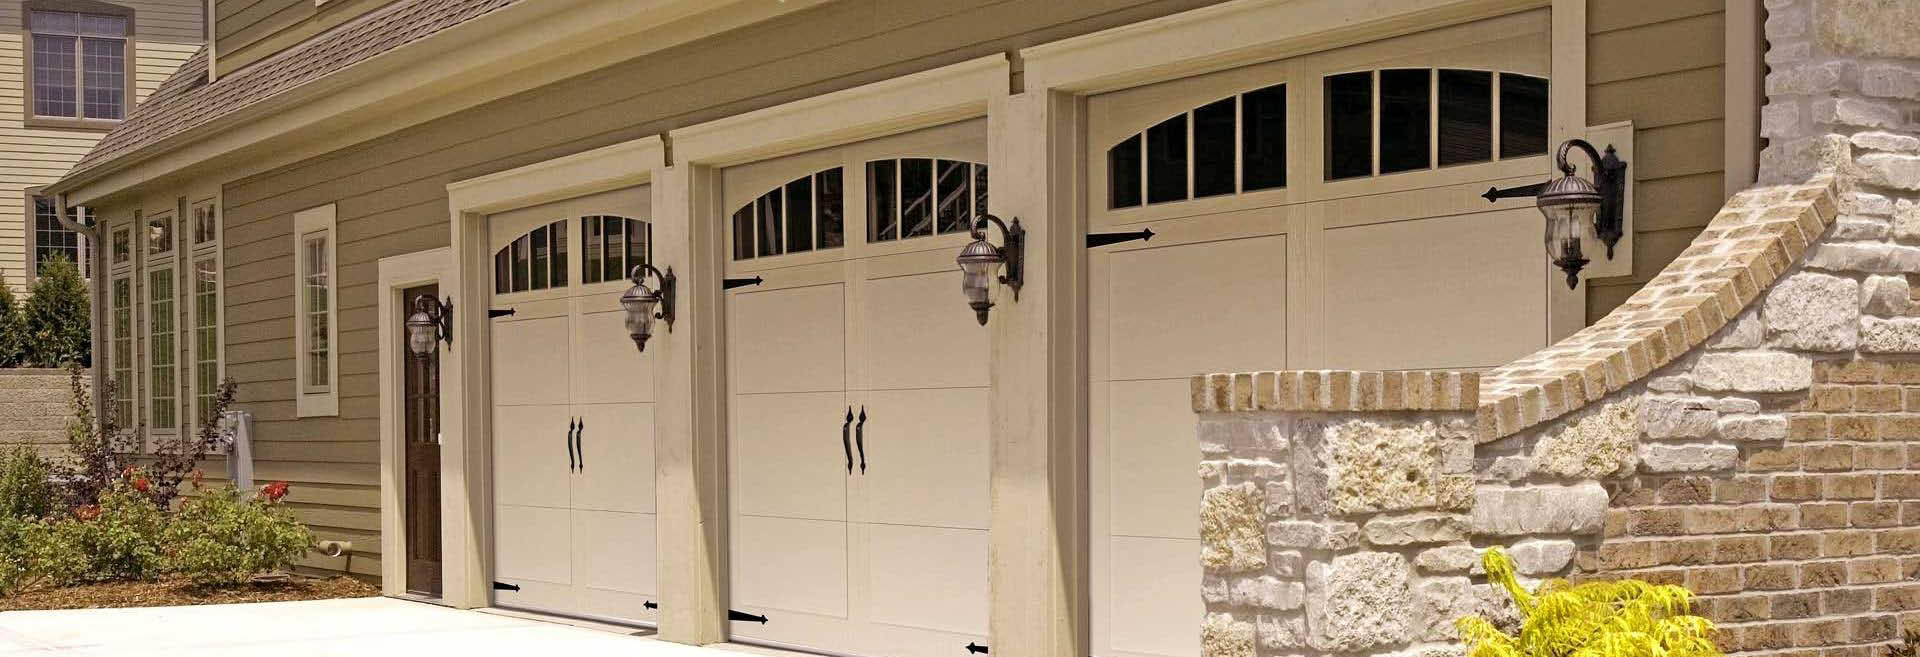 A1 Garage Door Service Maintenance , repair, service, installation in Tucson, AZ